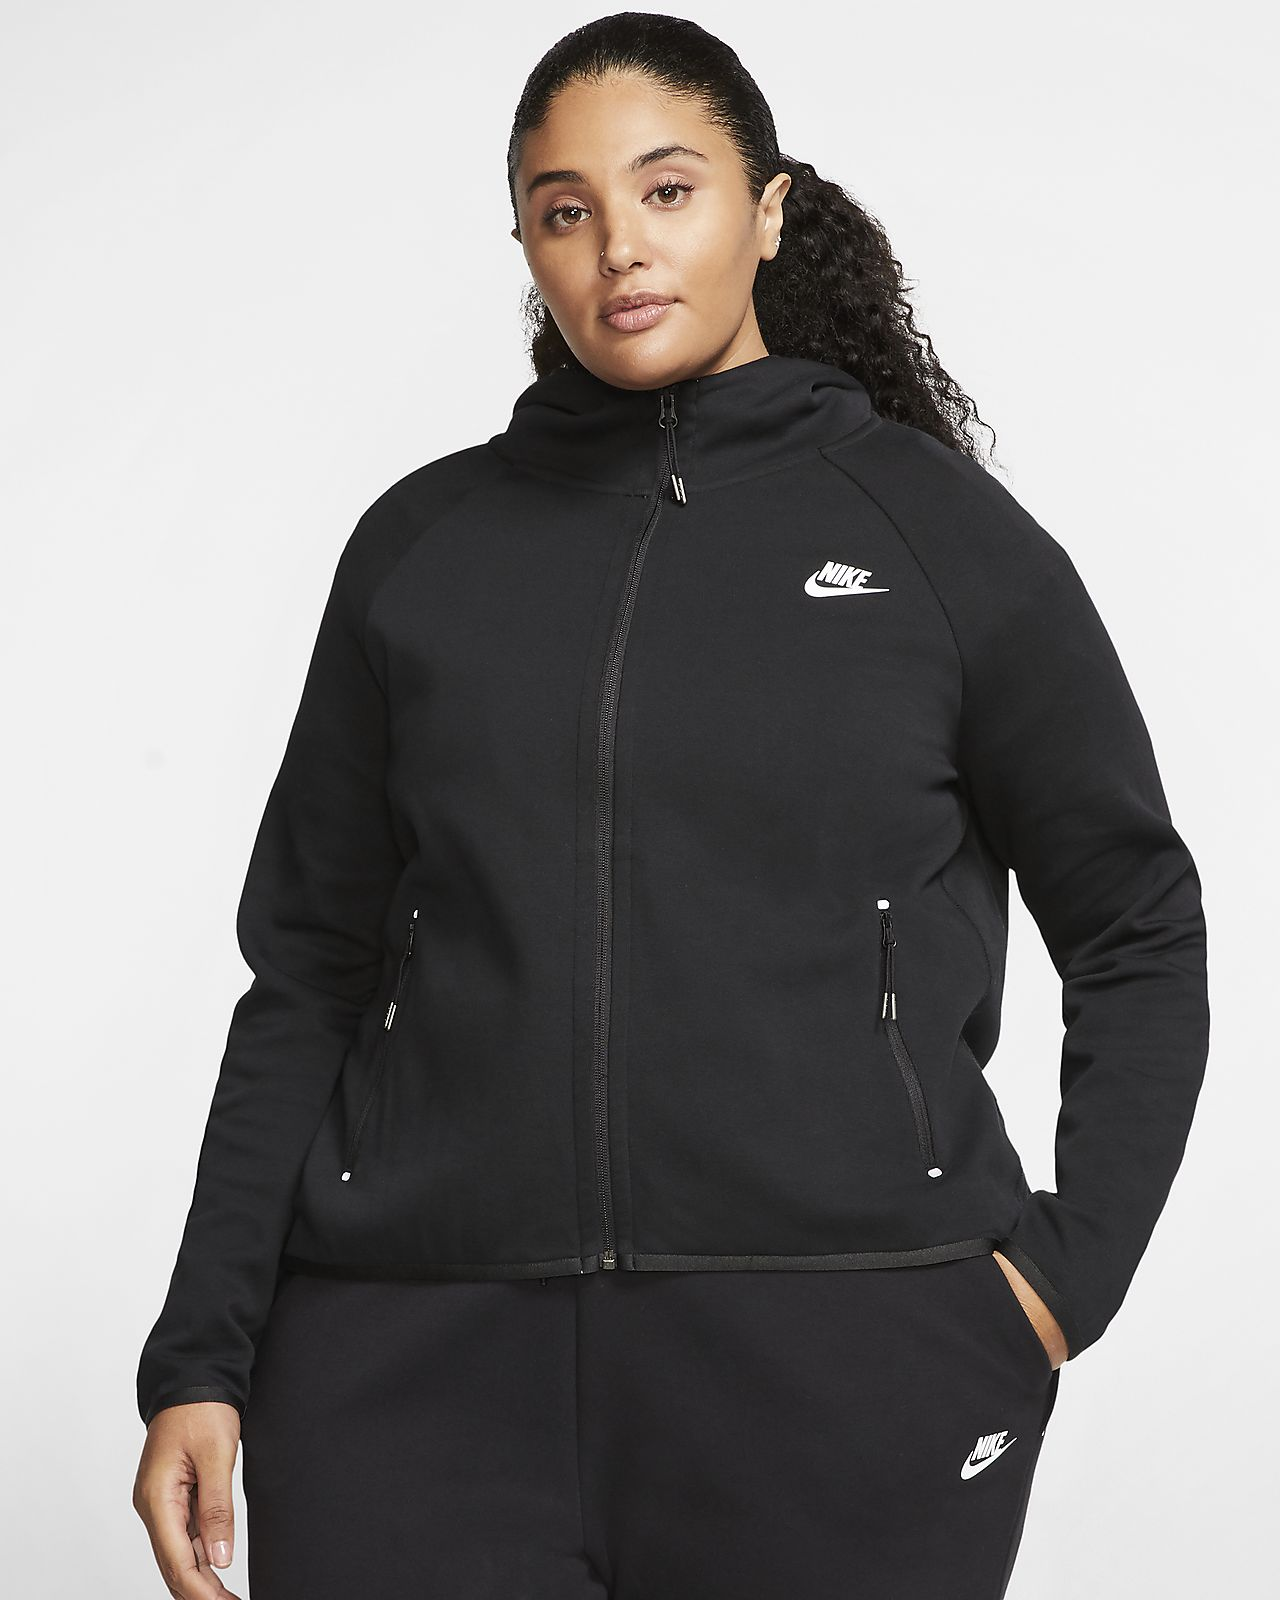 Nike Sportswear Tech Fleece Women's Cape (Plus Size)